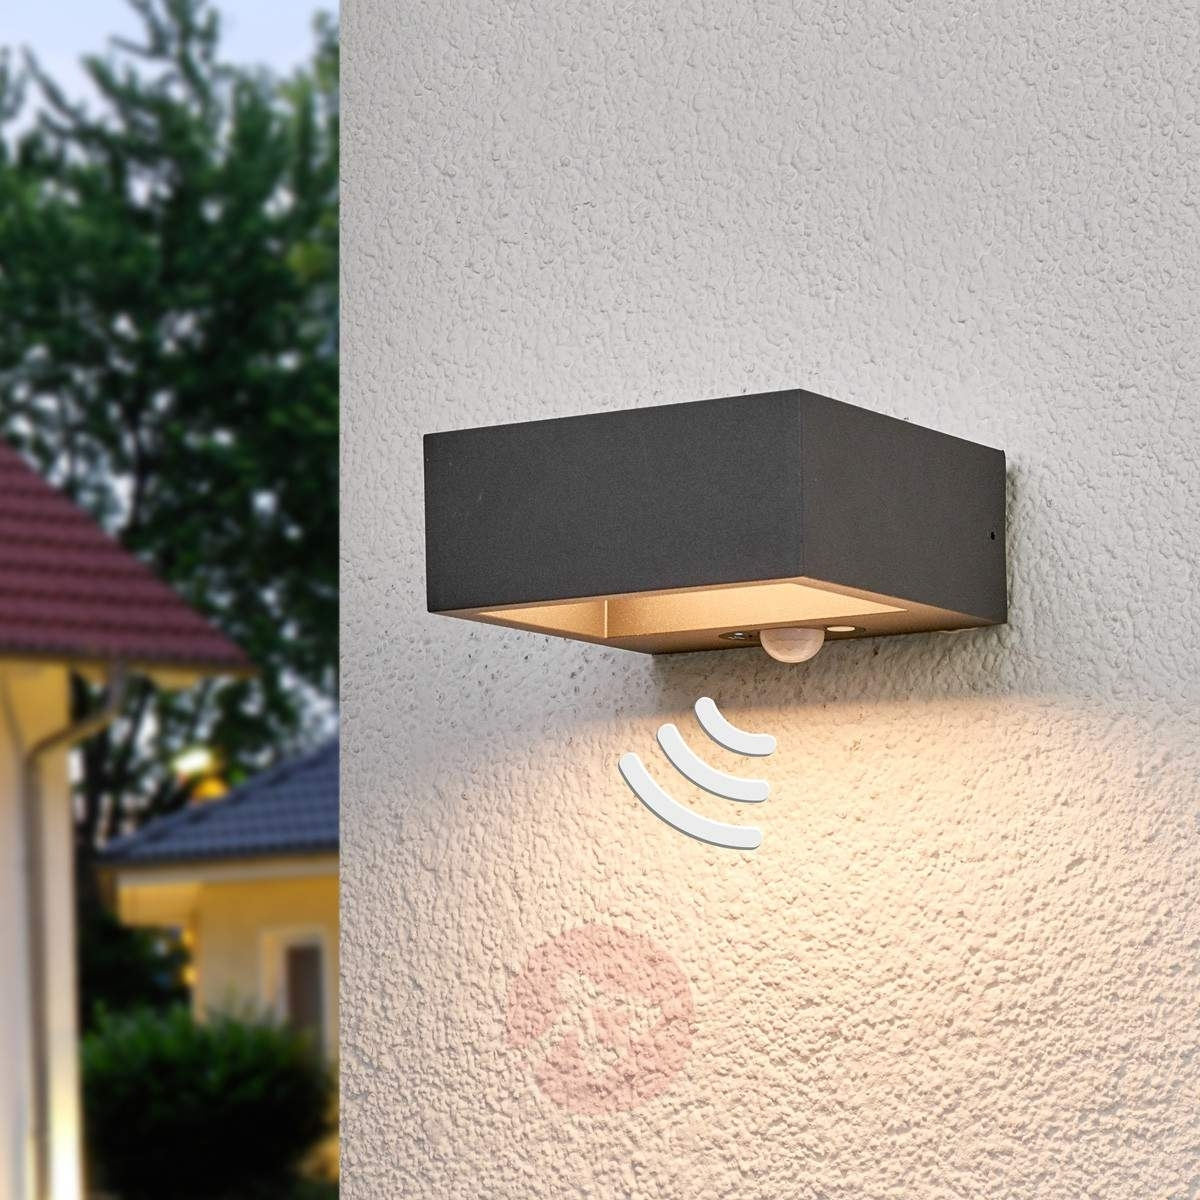 Solar Powered Led Outdoor Wall Light Mahra, Sensor | Lights (View 15 of 15)